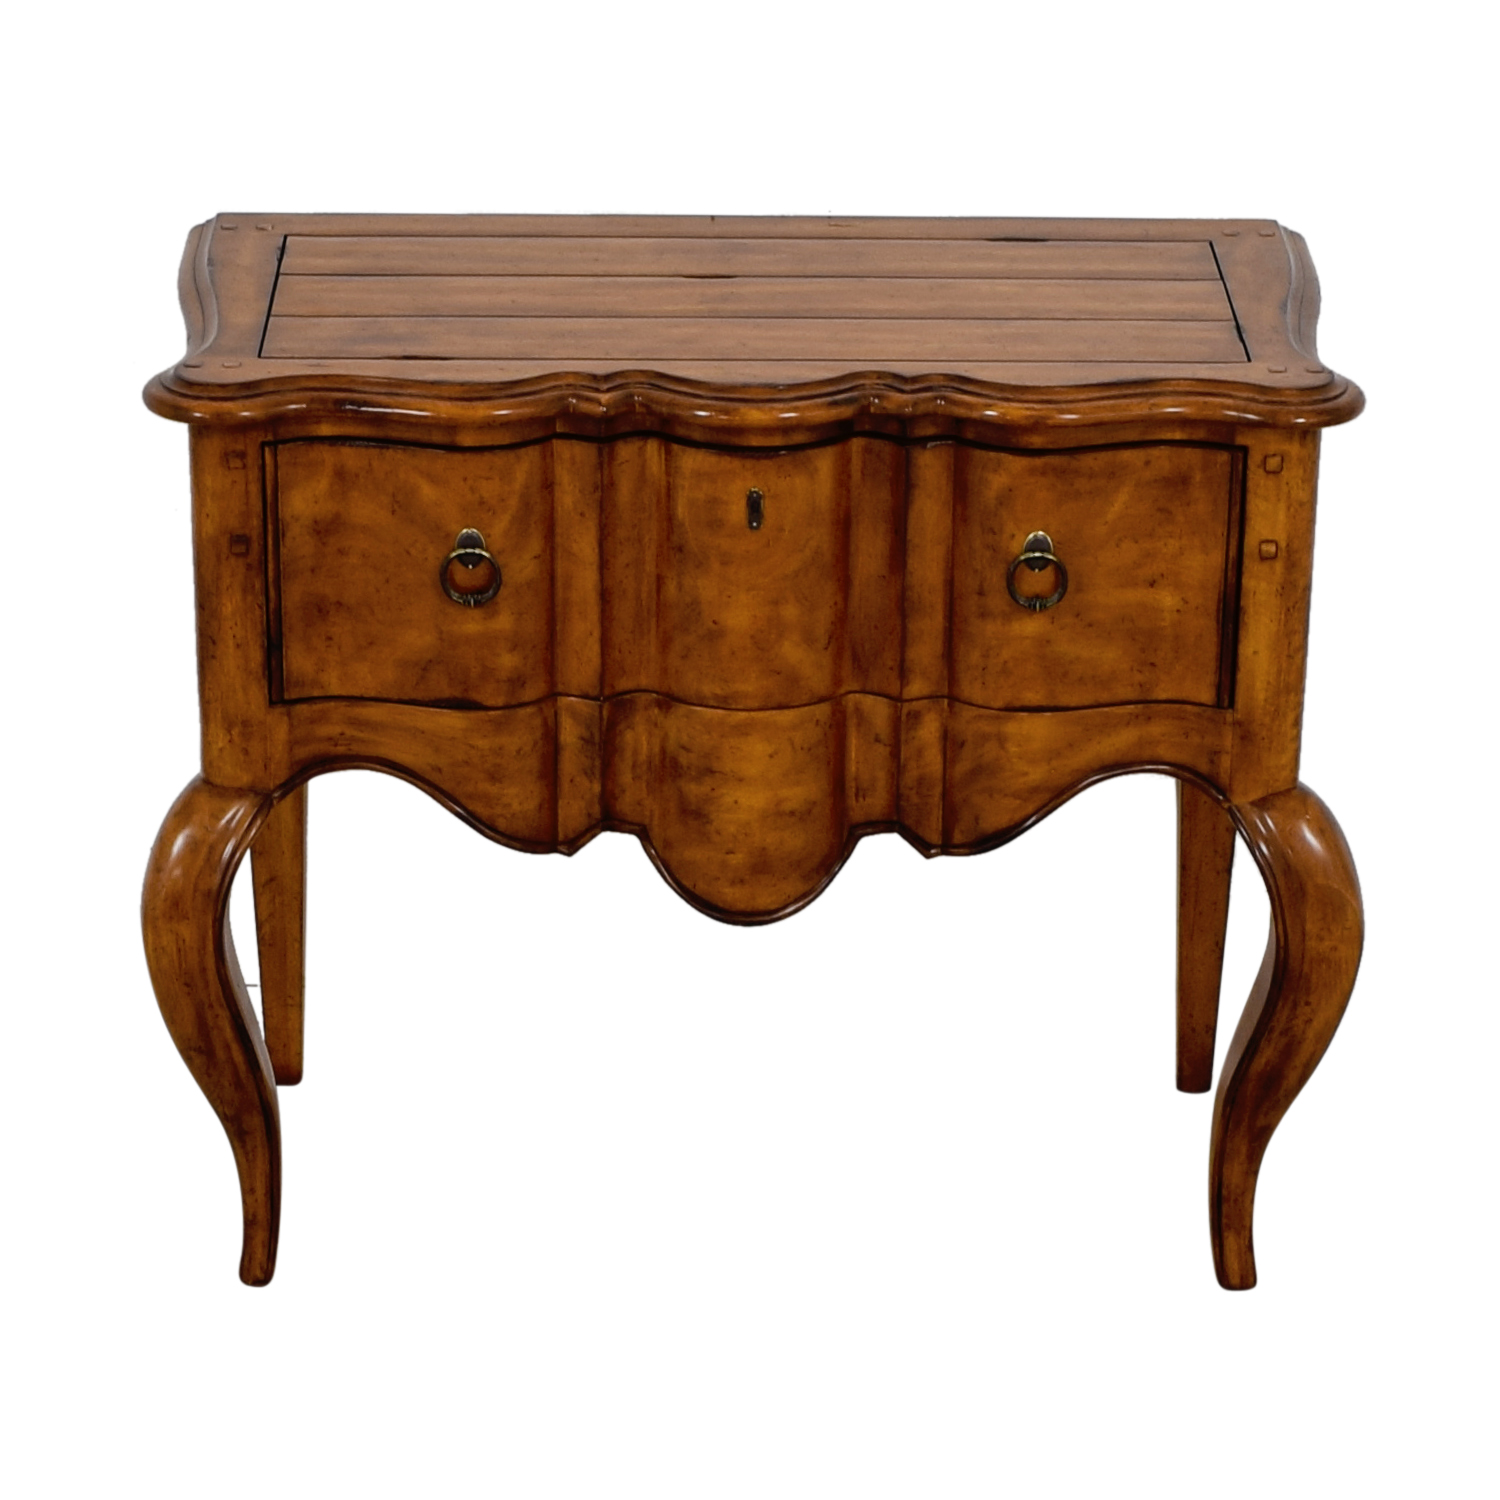 Pennsylvania House Curved Dovetailed Single Drawer Accent Table On